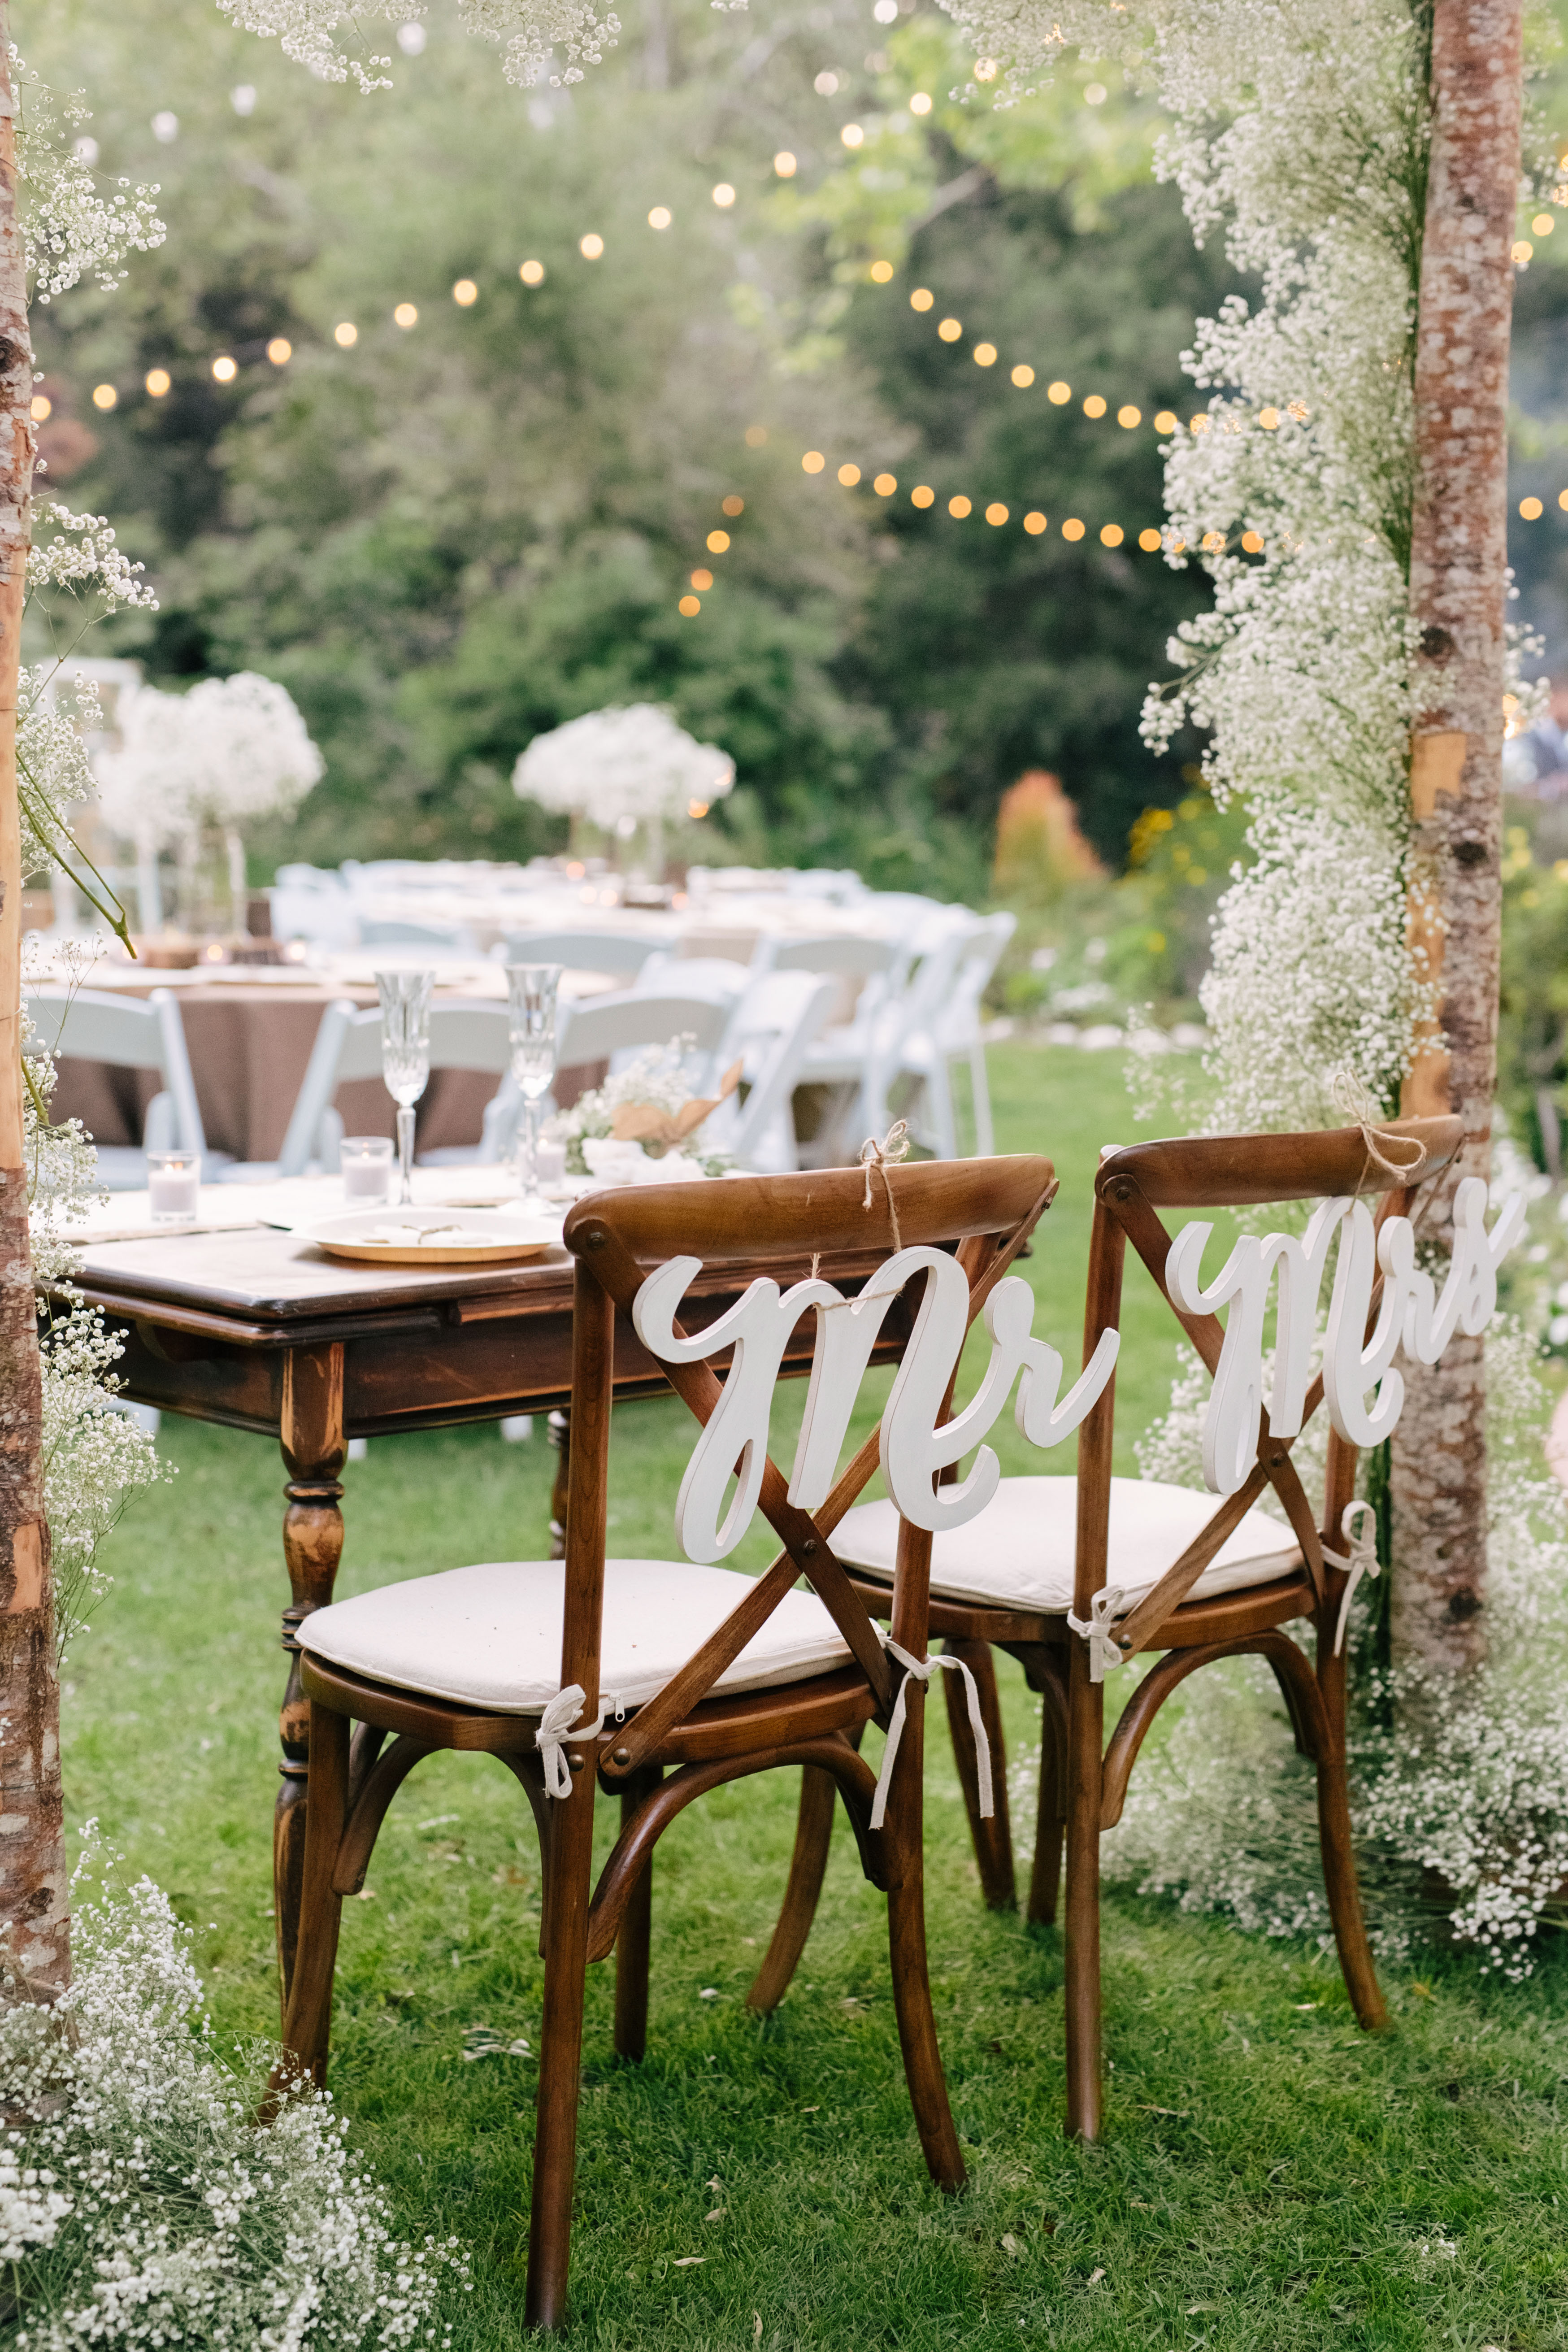 mr and mrs white signs tied with twine to chairs